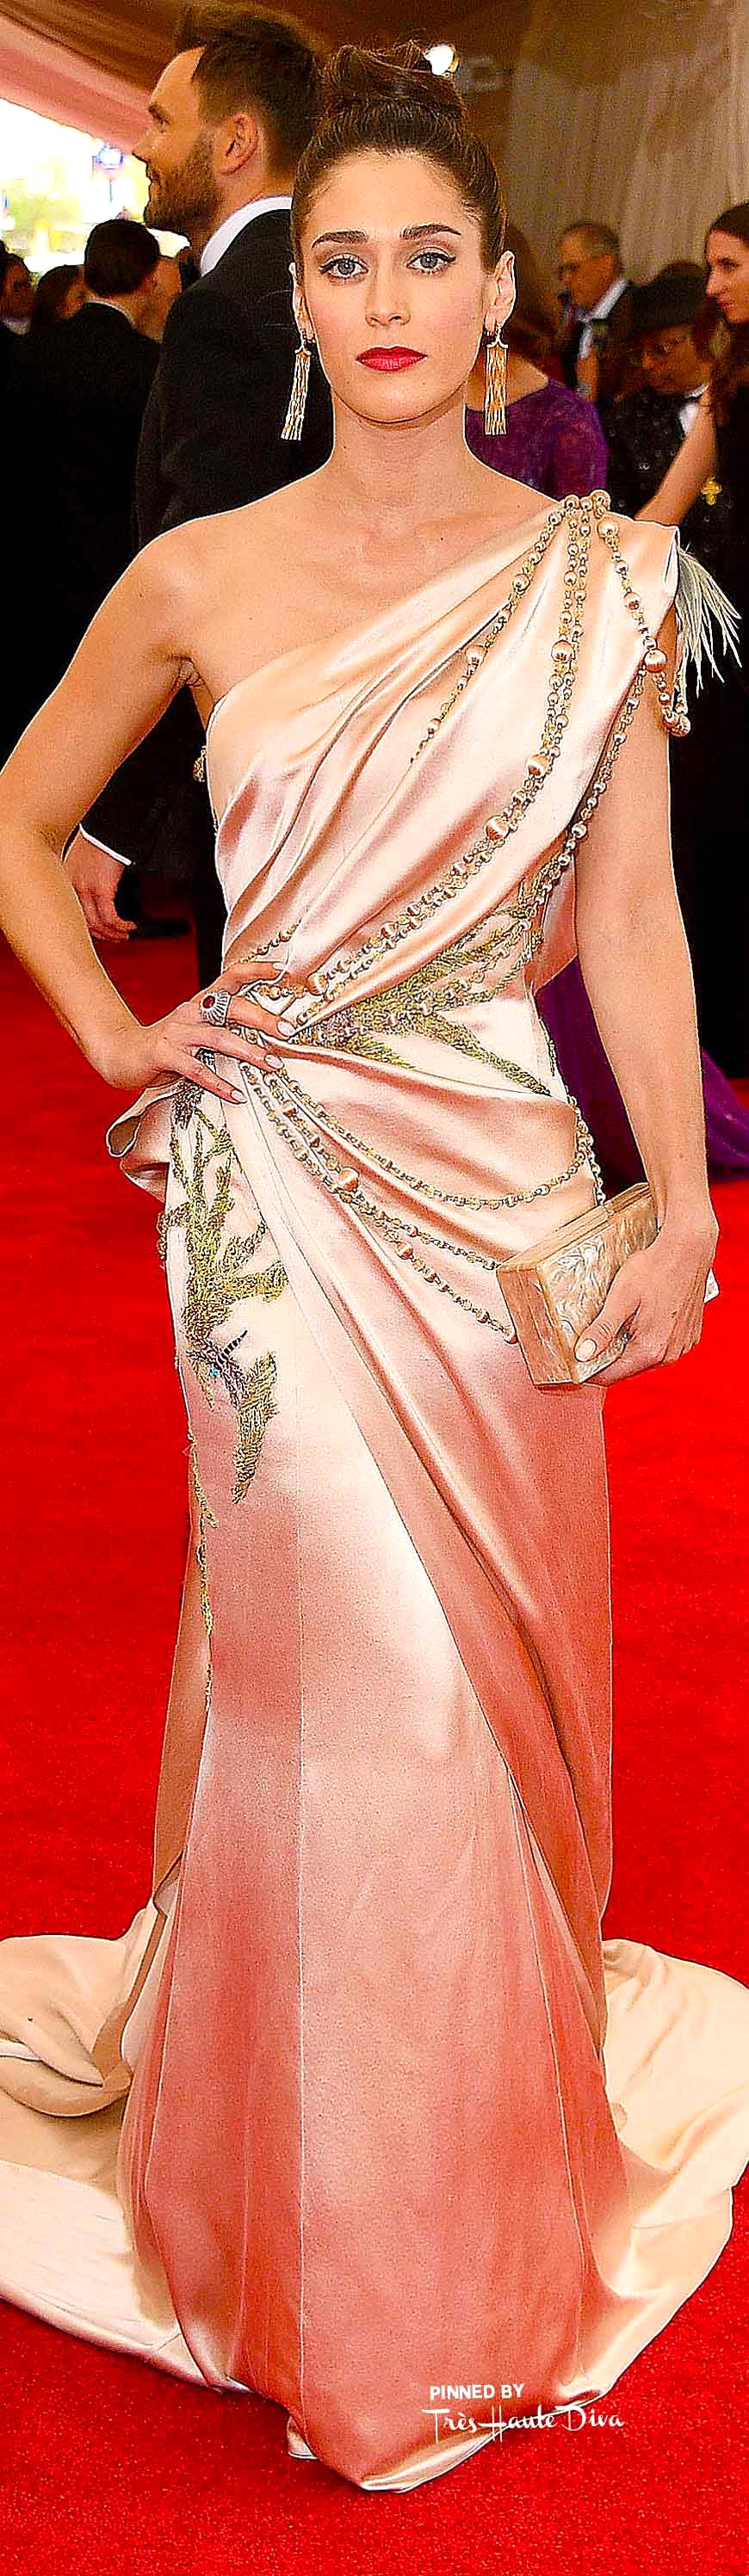 Lizzy Caplan in Donna Karan Atelier Getty Images/ Larry Busacca